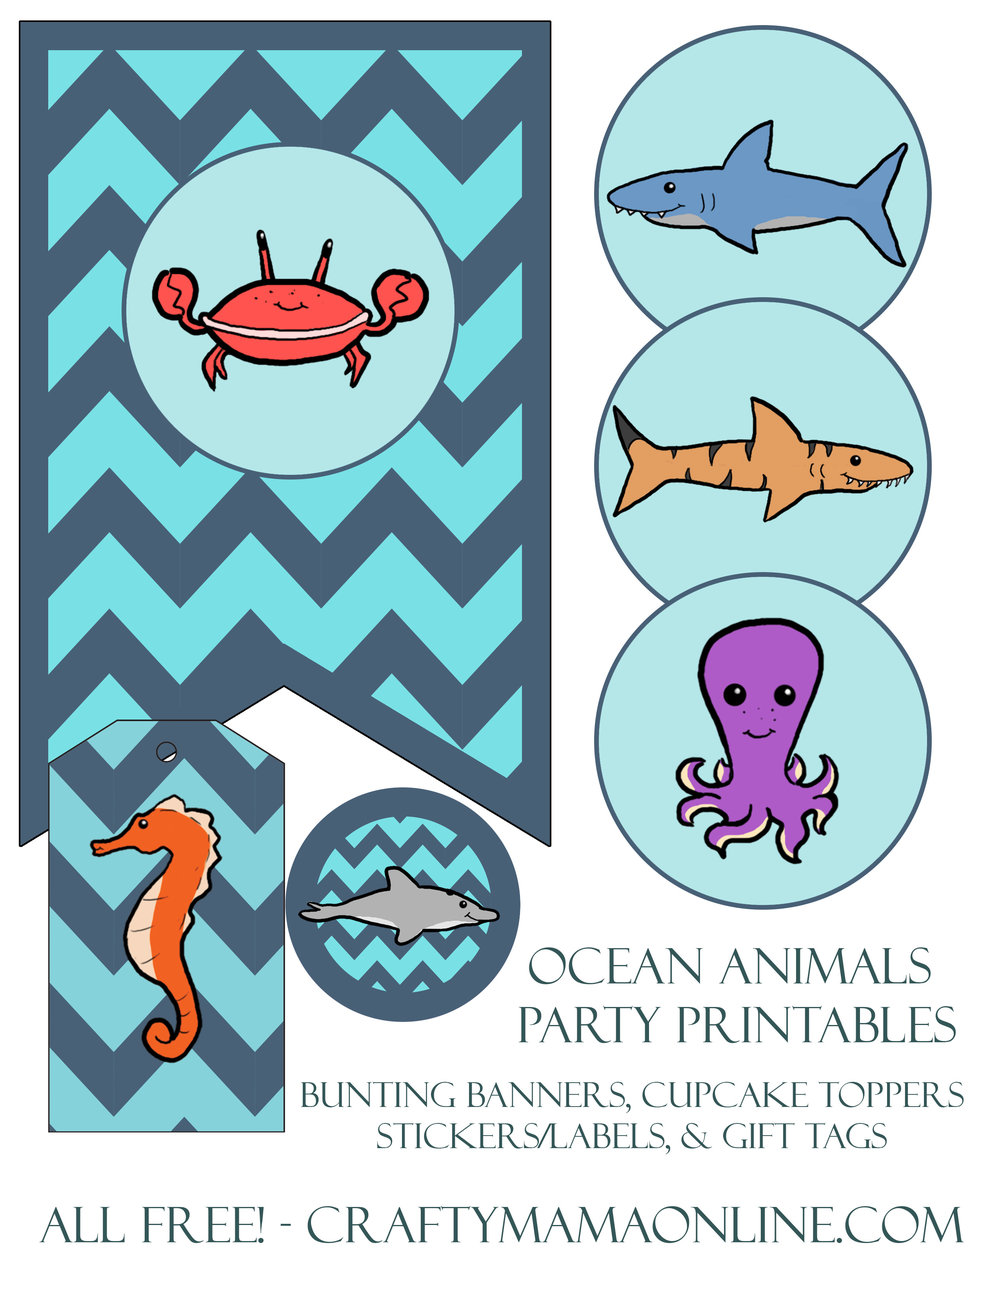 ocean animals party printables